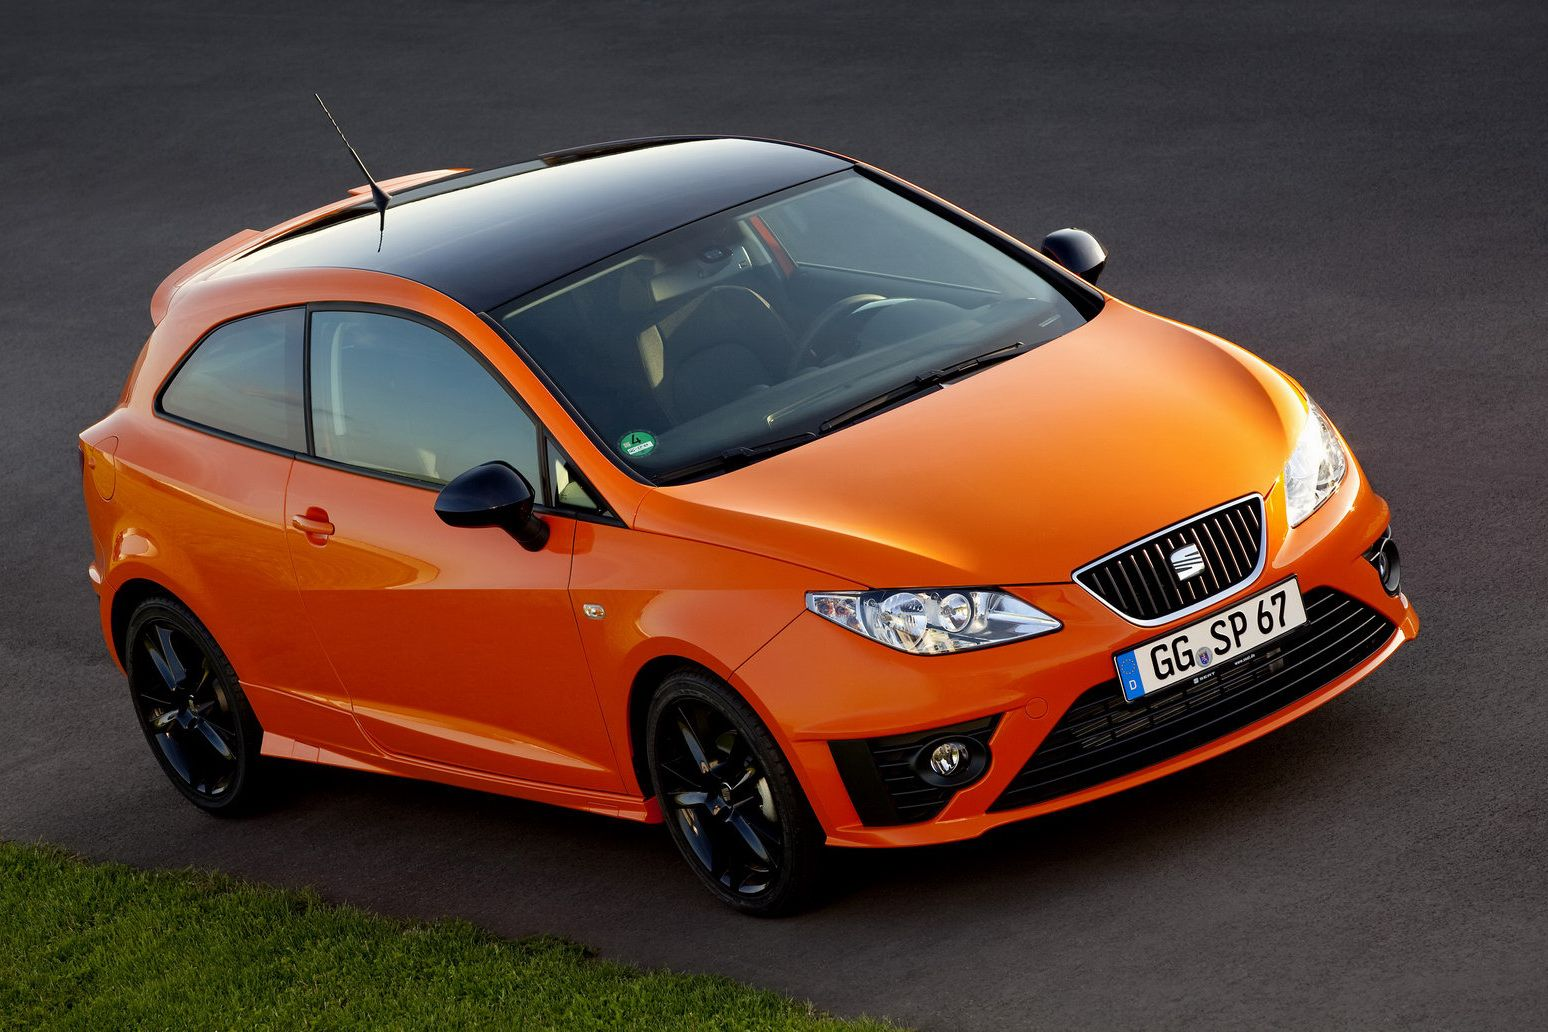 Seat Ibiza Sc Sport Limited Seat Ibiza Sc Sport Limited Bicolore - Sports cars with 5 seats